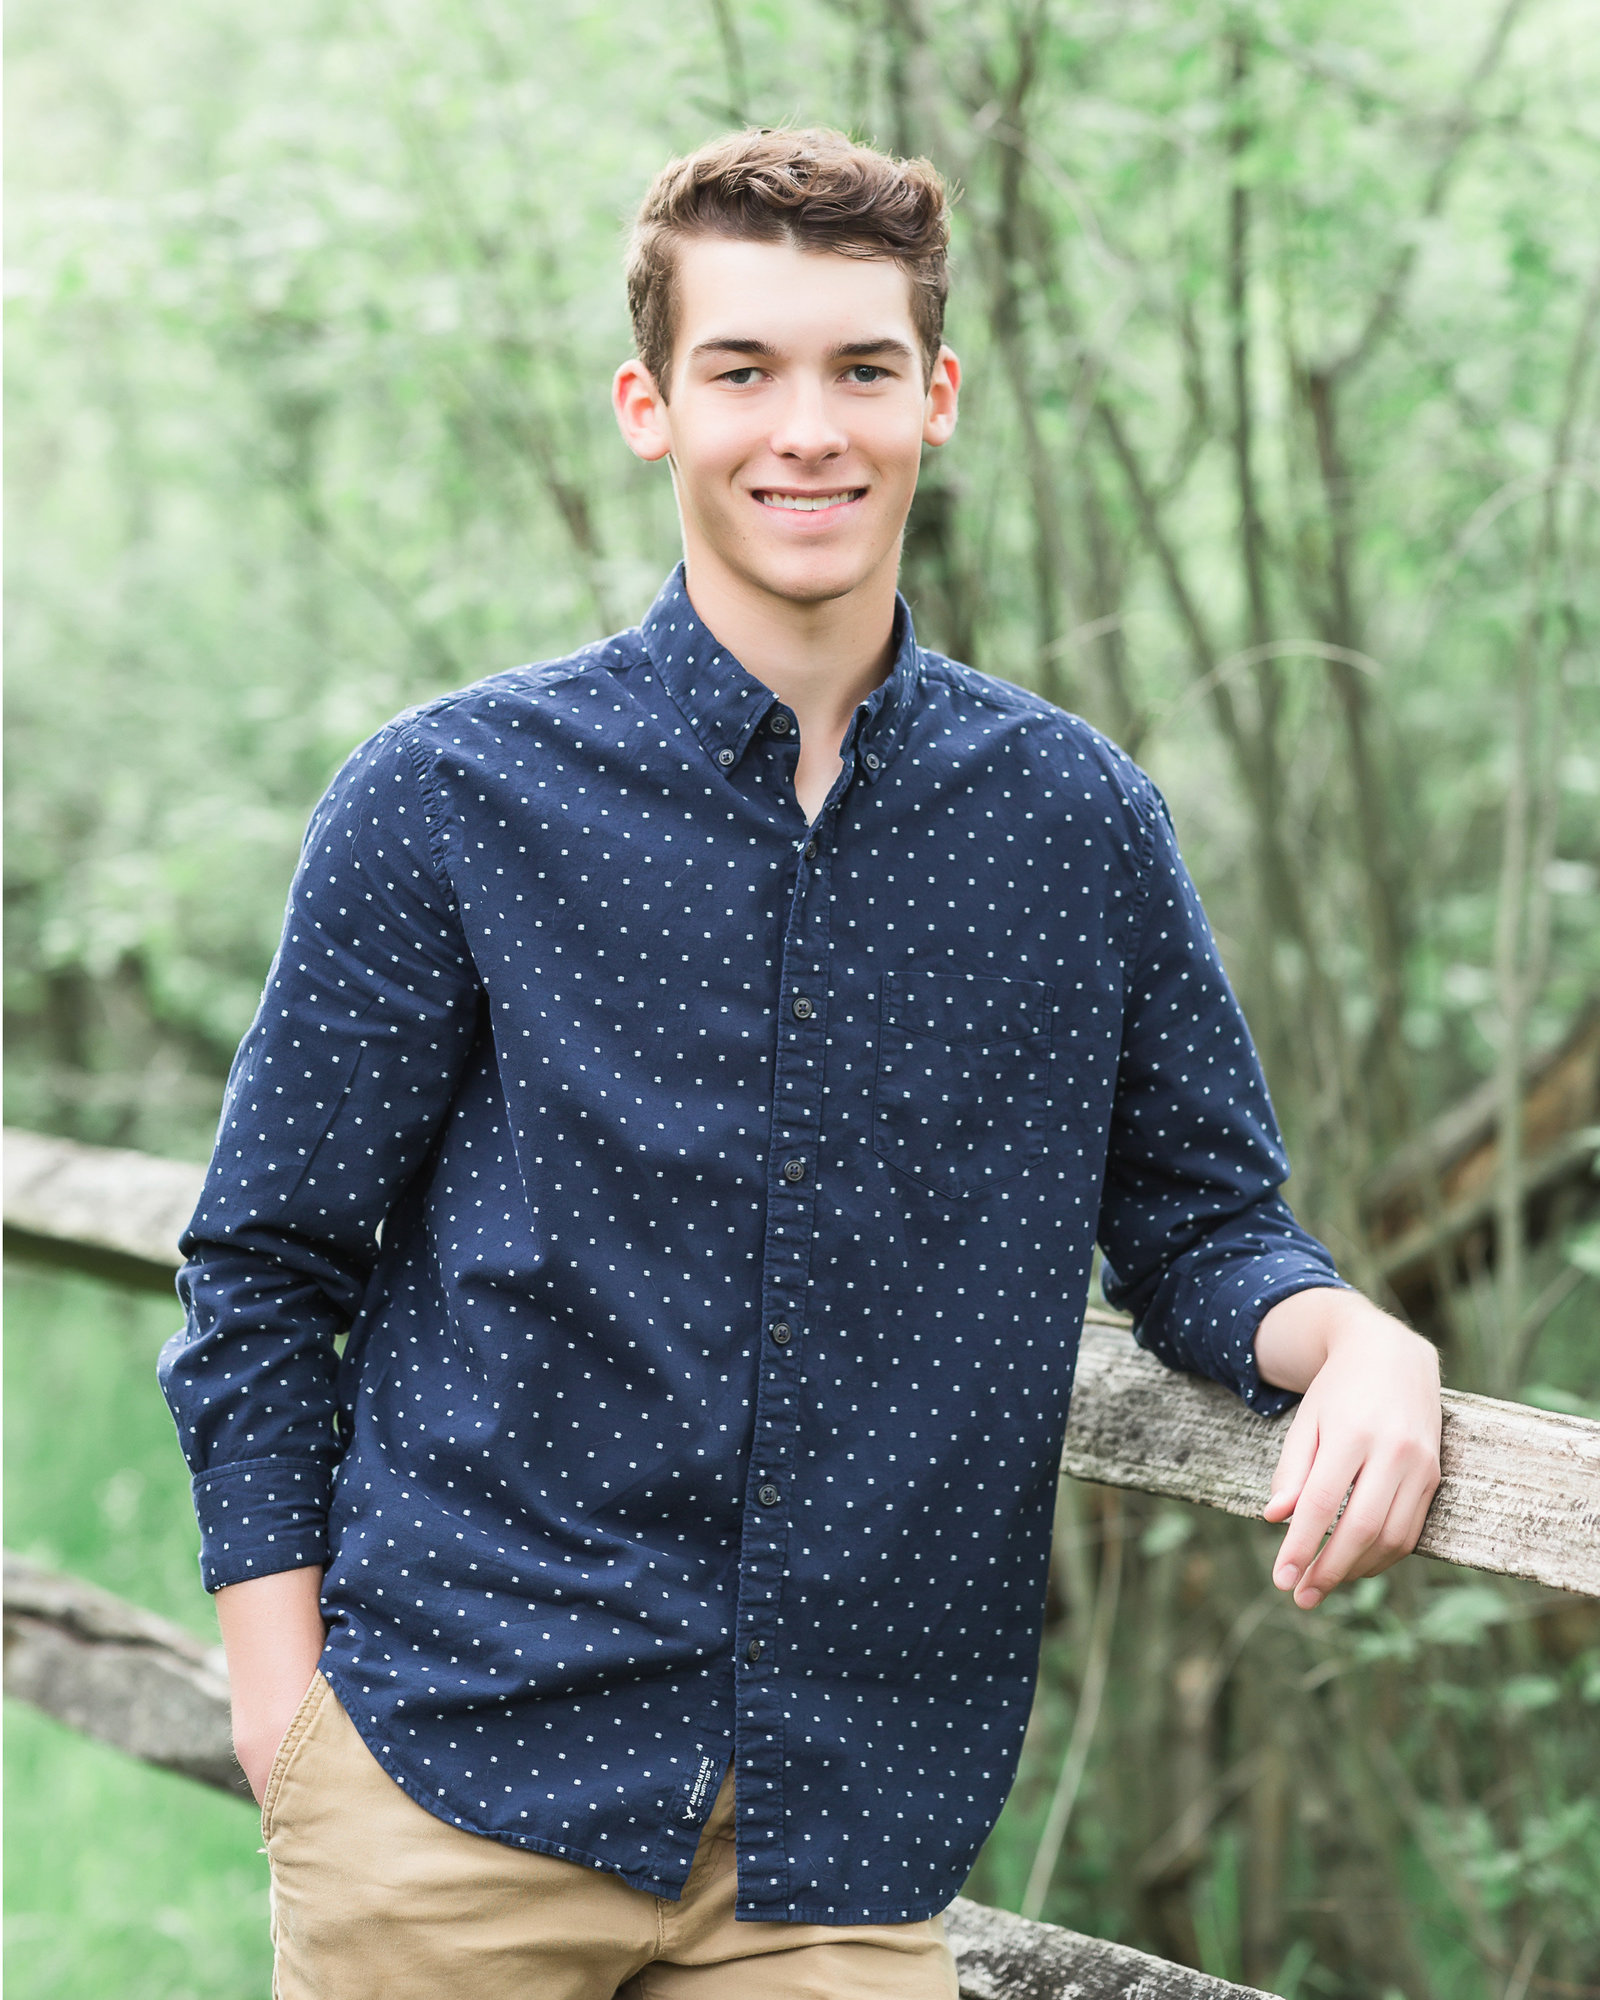 senior guy-nature session-5807-cv-8x10